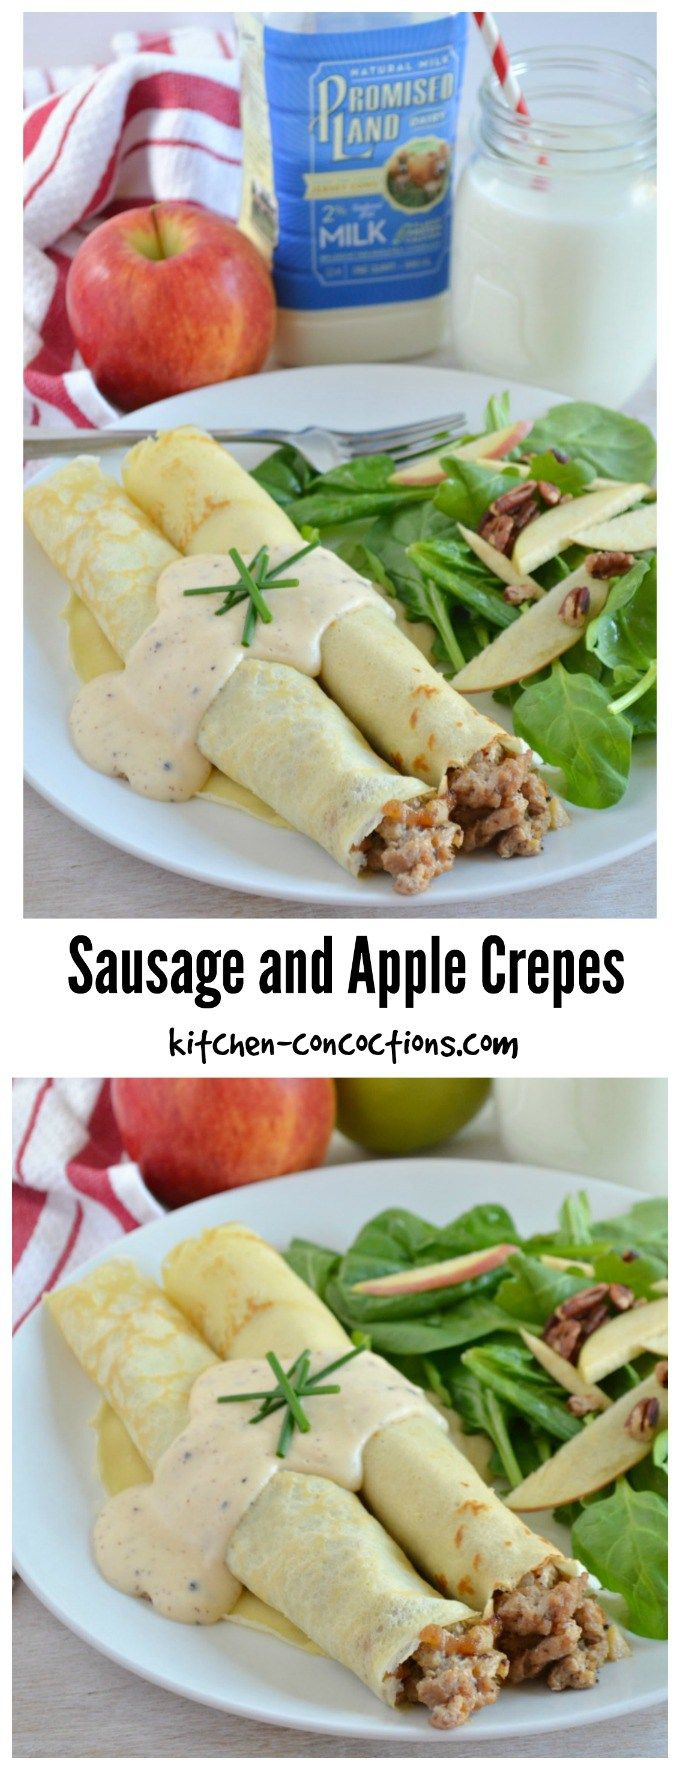 Sausage and Apple Crepes - Try this savory crepe recipe for your next weekend brunch! This Sausage and Apple Crepe recipe is packed with fall flavors and finished off with a creamy cheese sauce. It is perfect for breakfast or even dinner! {AD} #FarFromOrdinaryMilk #CollectiveBias